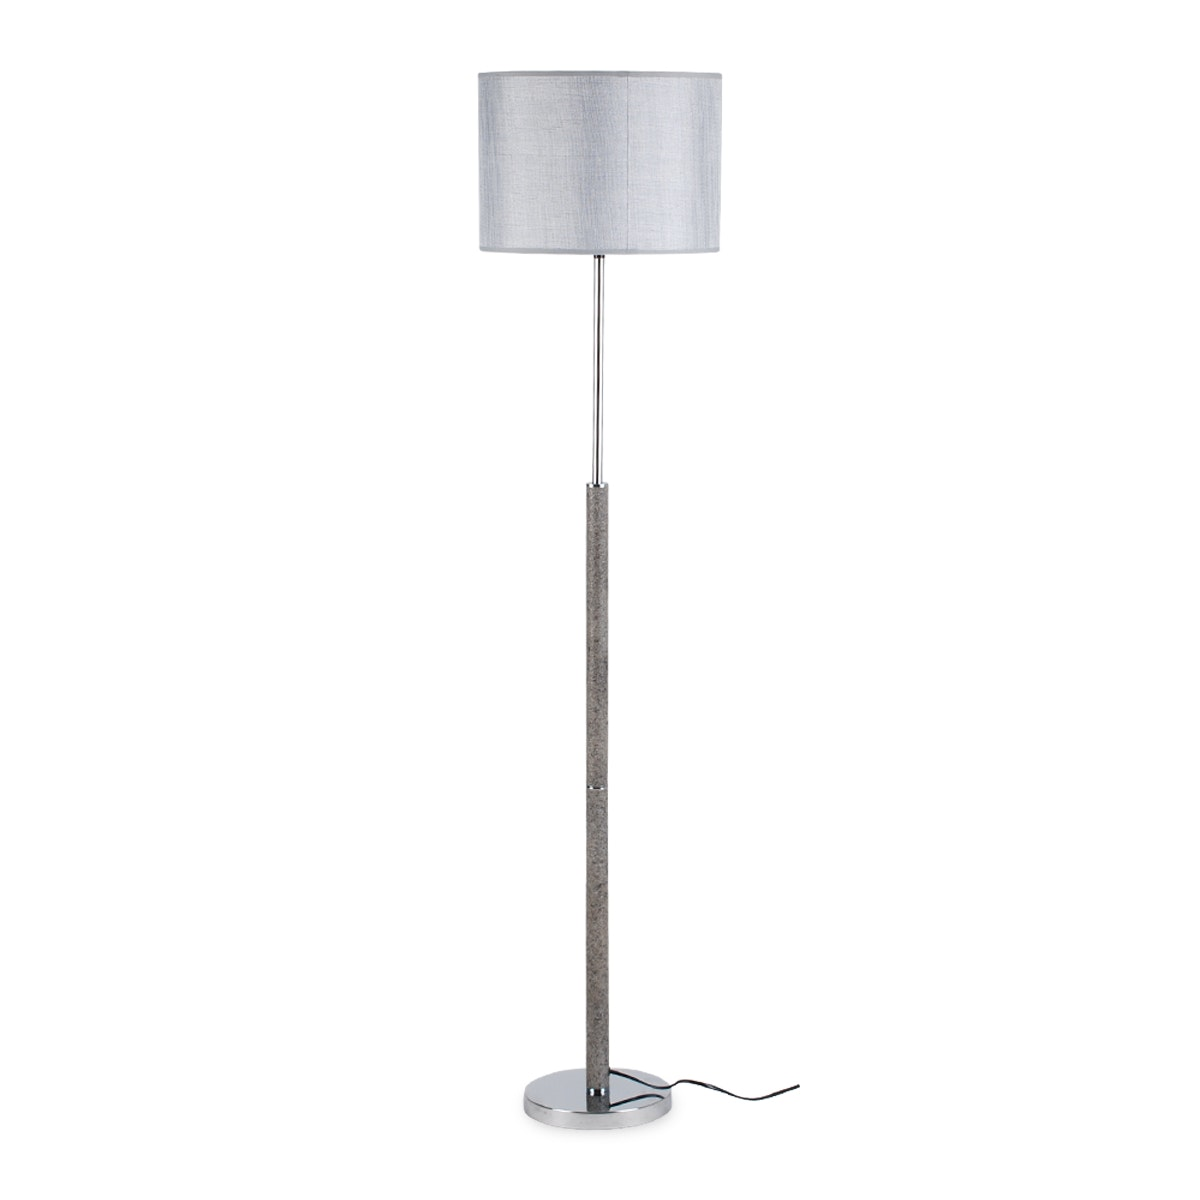 3+Projects Lampu Lantai Floor Lamp Grey Fabric Shade 3+DL-LD4033-GR-VG